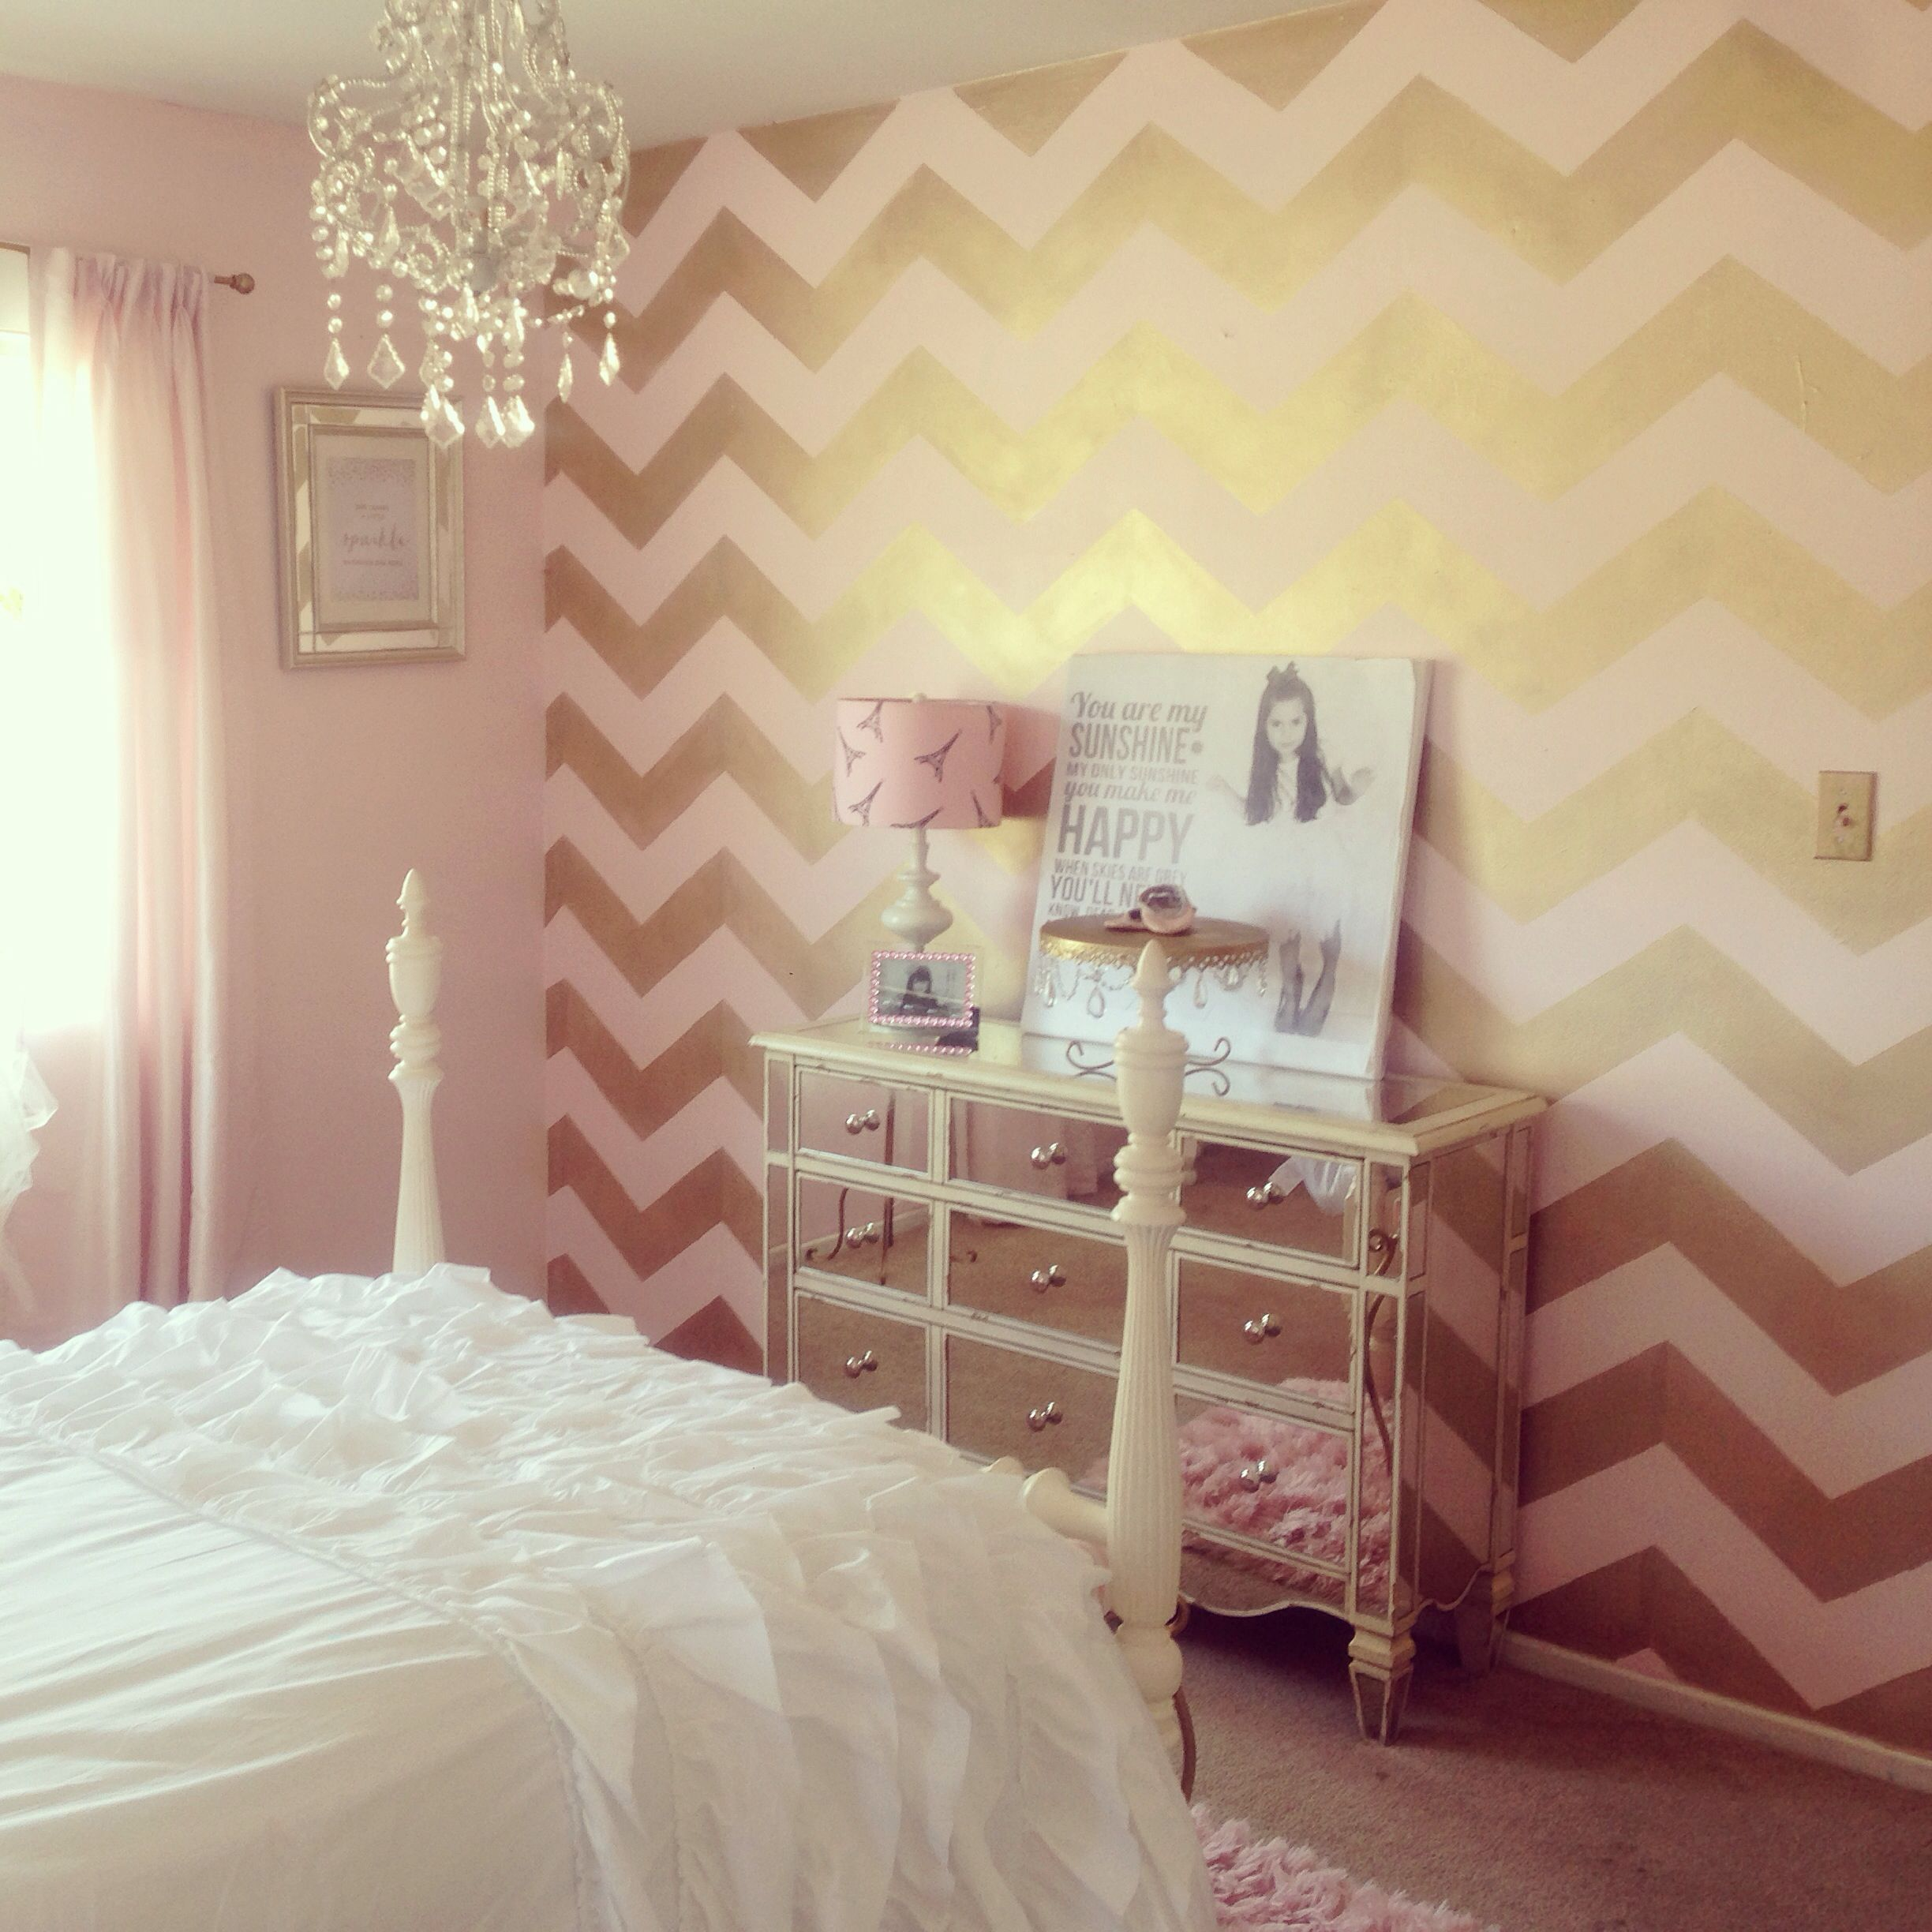 full gold lovely bedroom awesome ideas large of decor bedroompink silver pink decorating set size and white